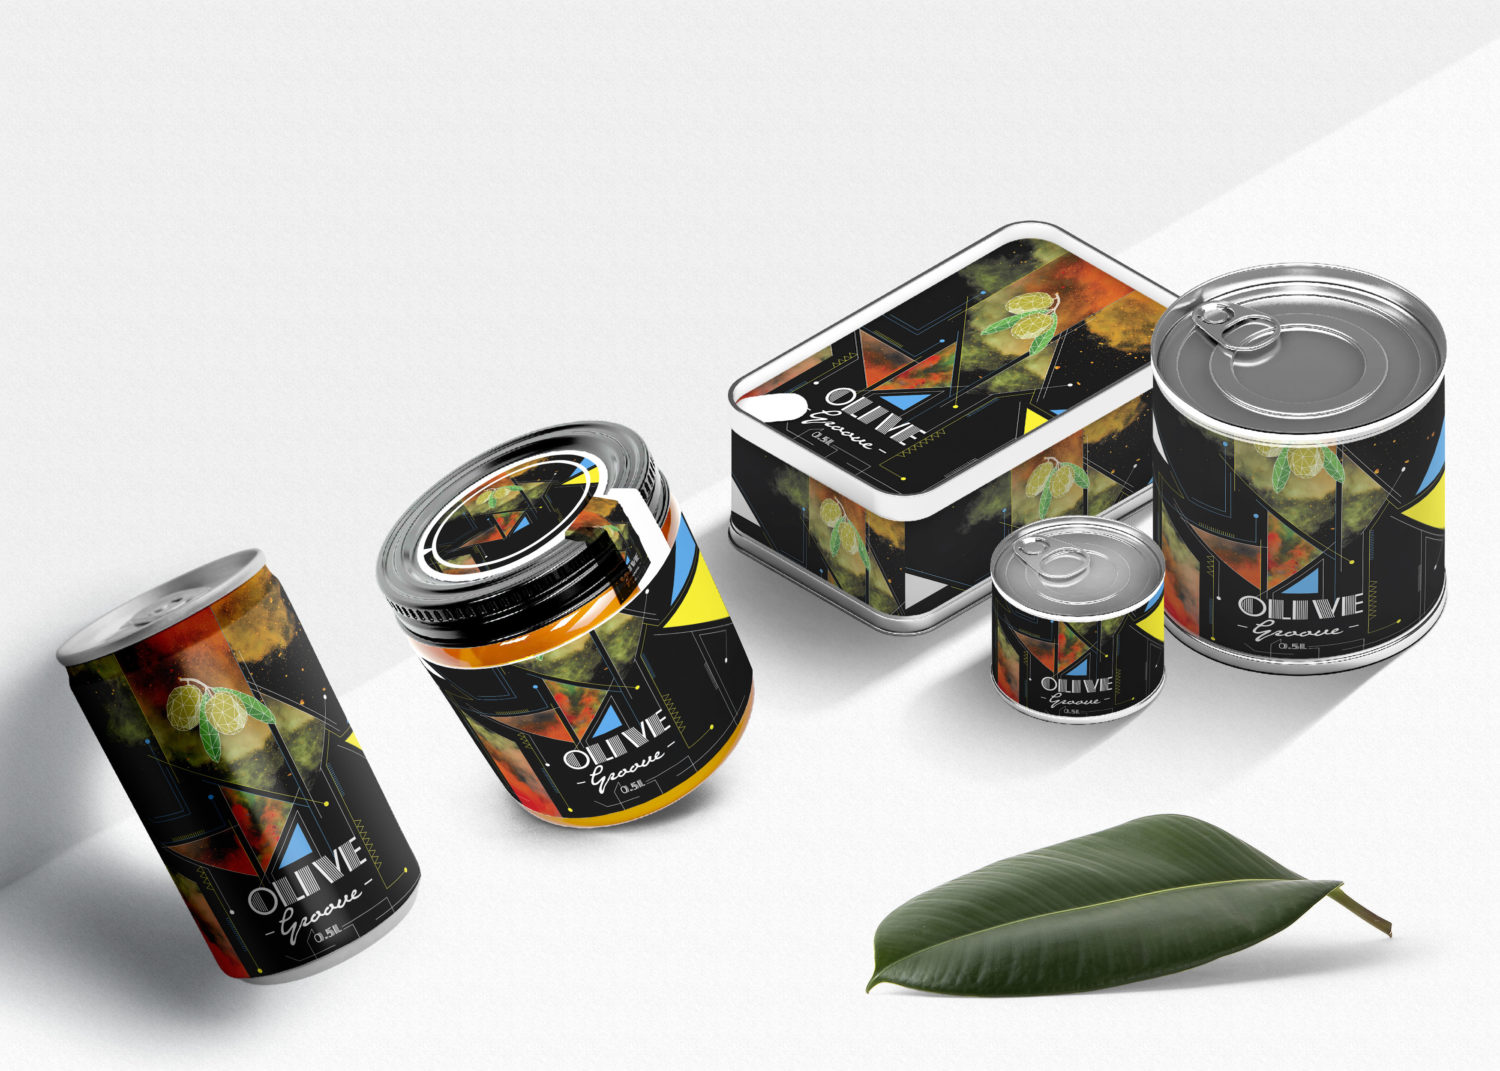 New Steel Can Product Design Mockup